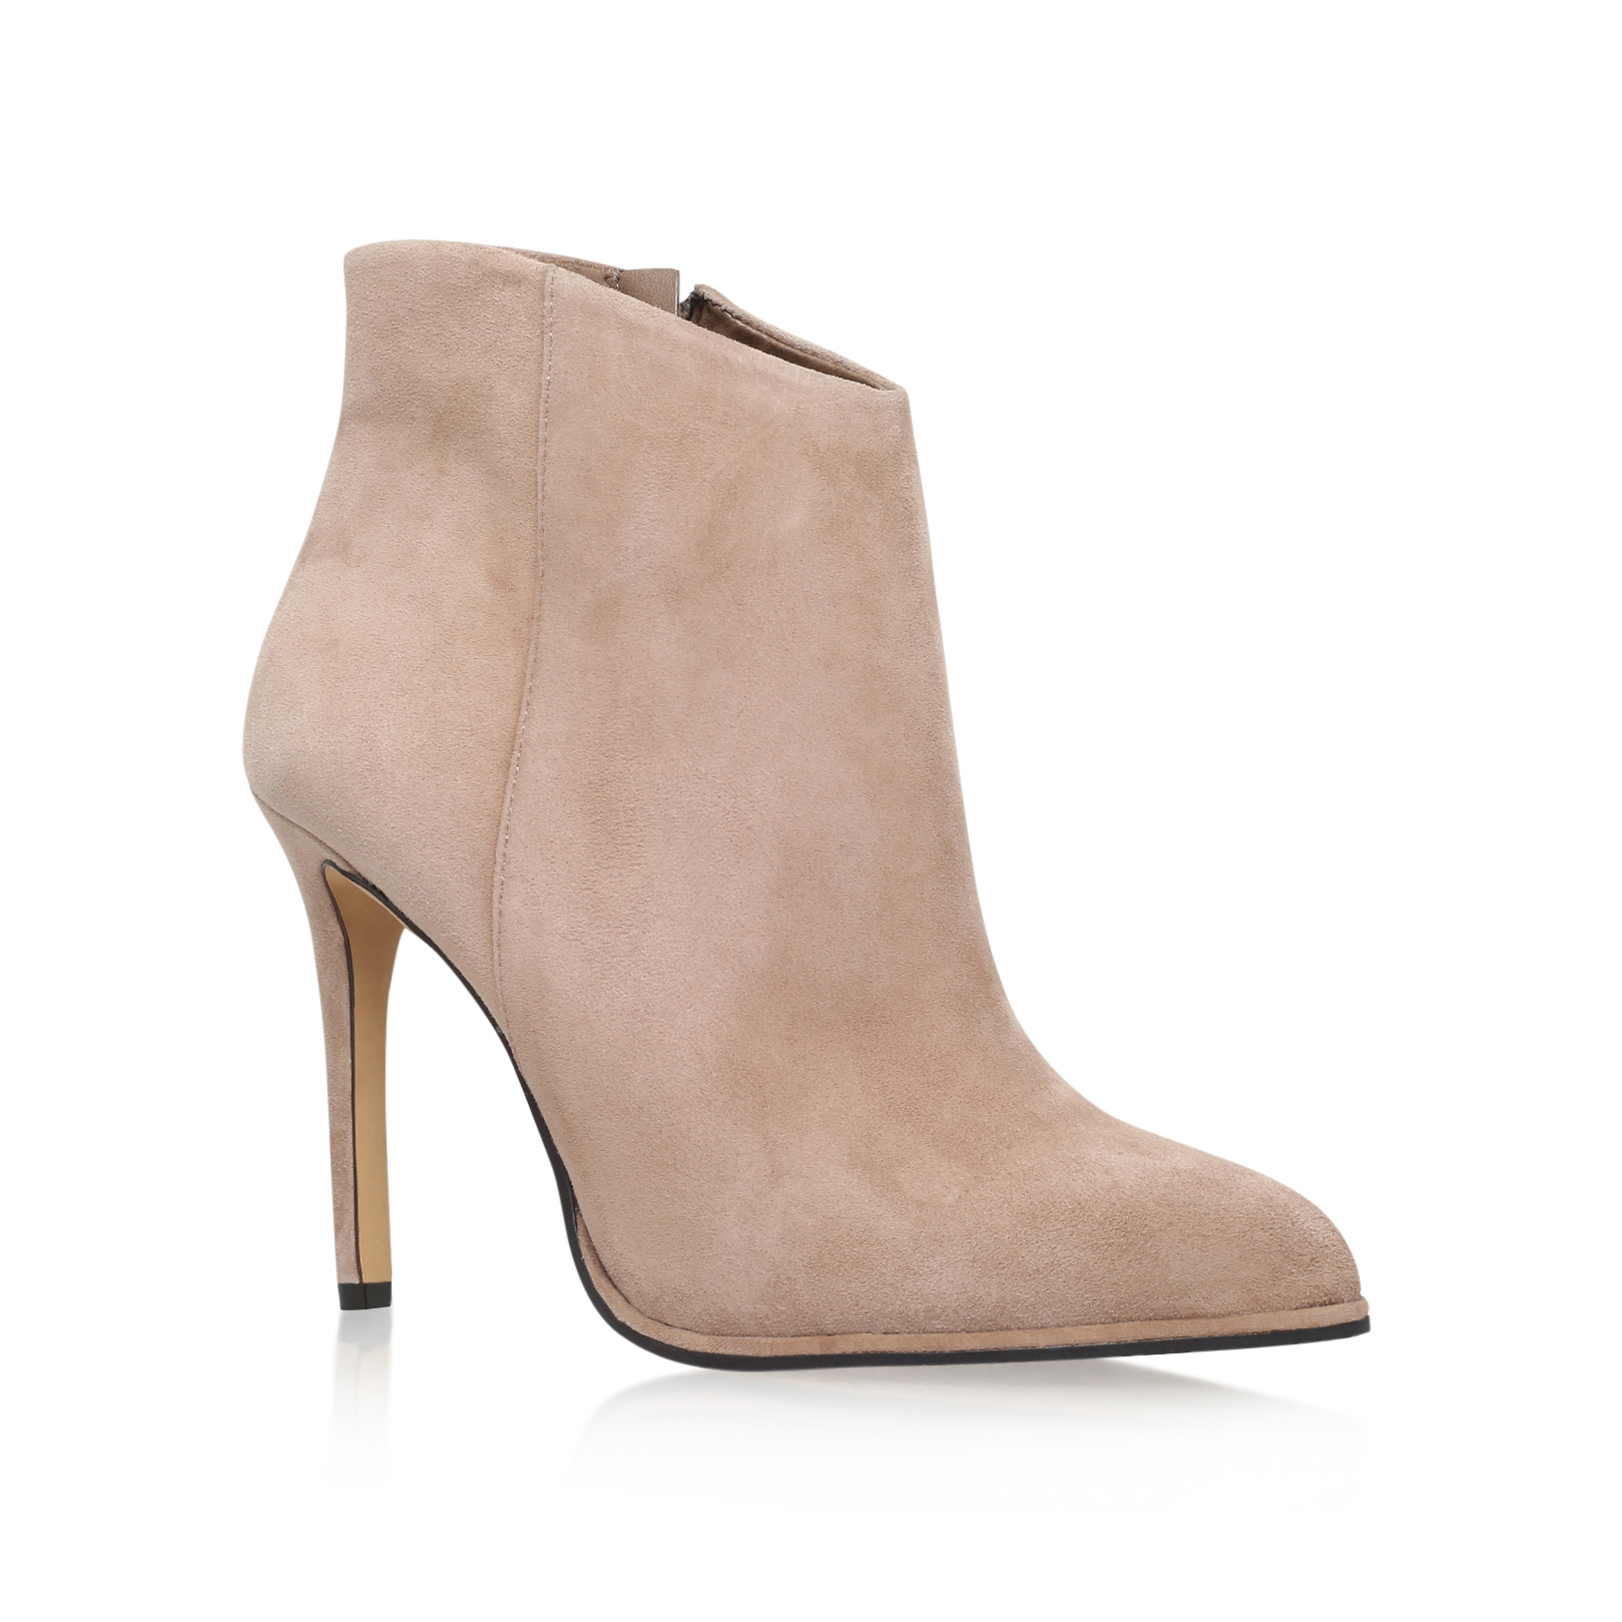 Vince Camuto High Heel Shoe